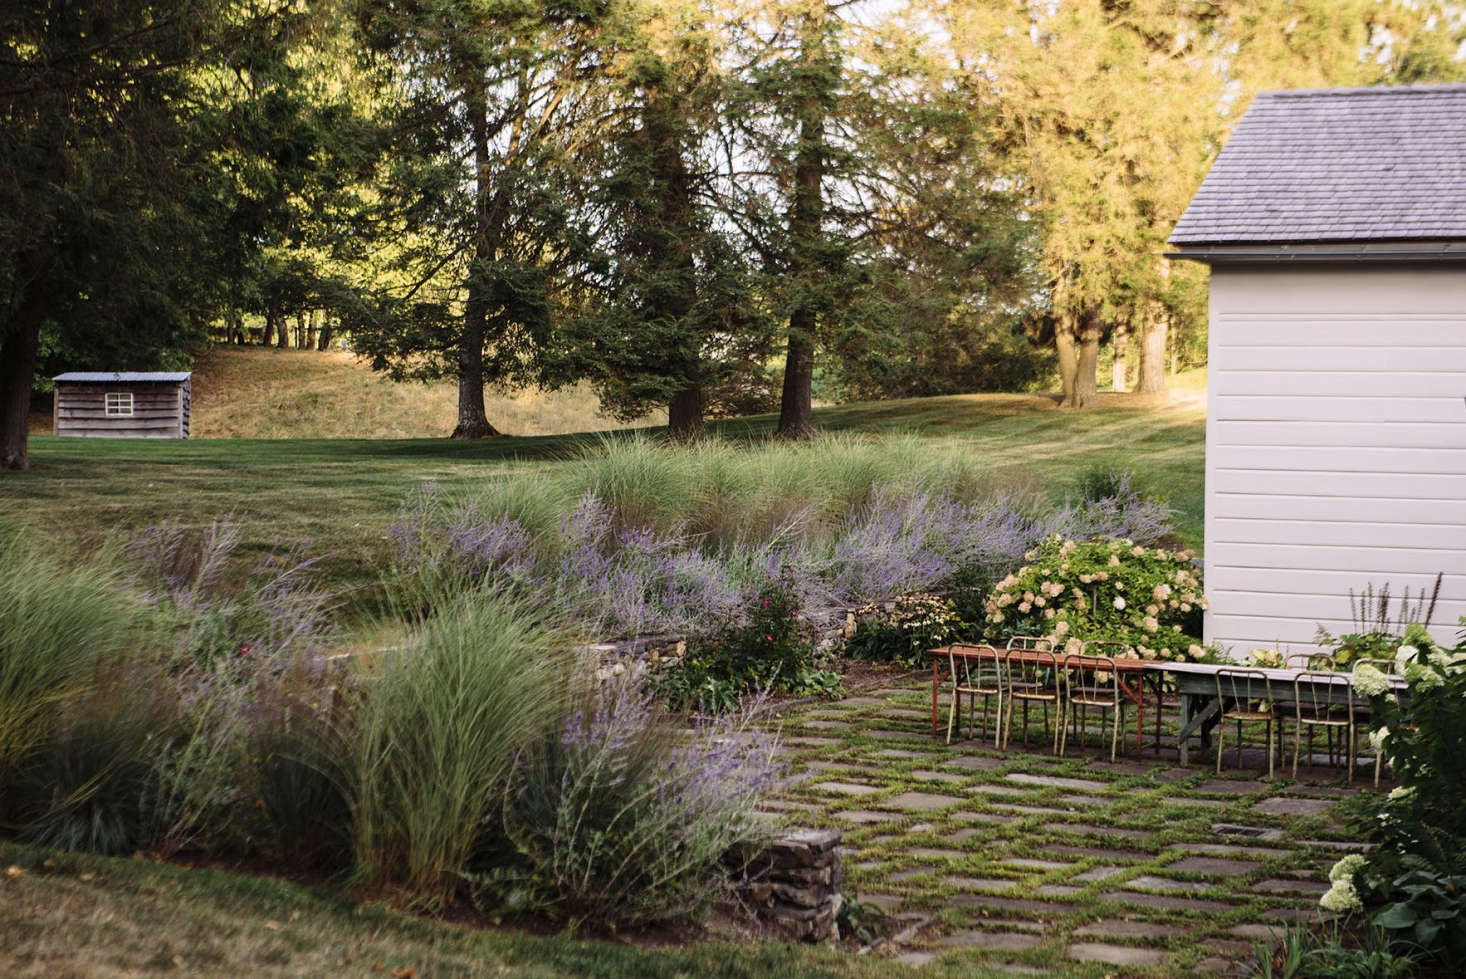 Easy-to-care-for perennialsbloom from spring through autumn.